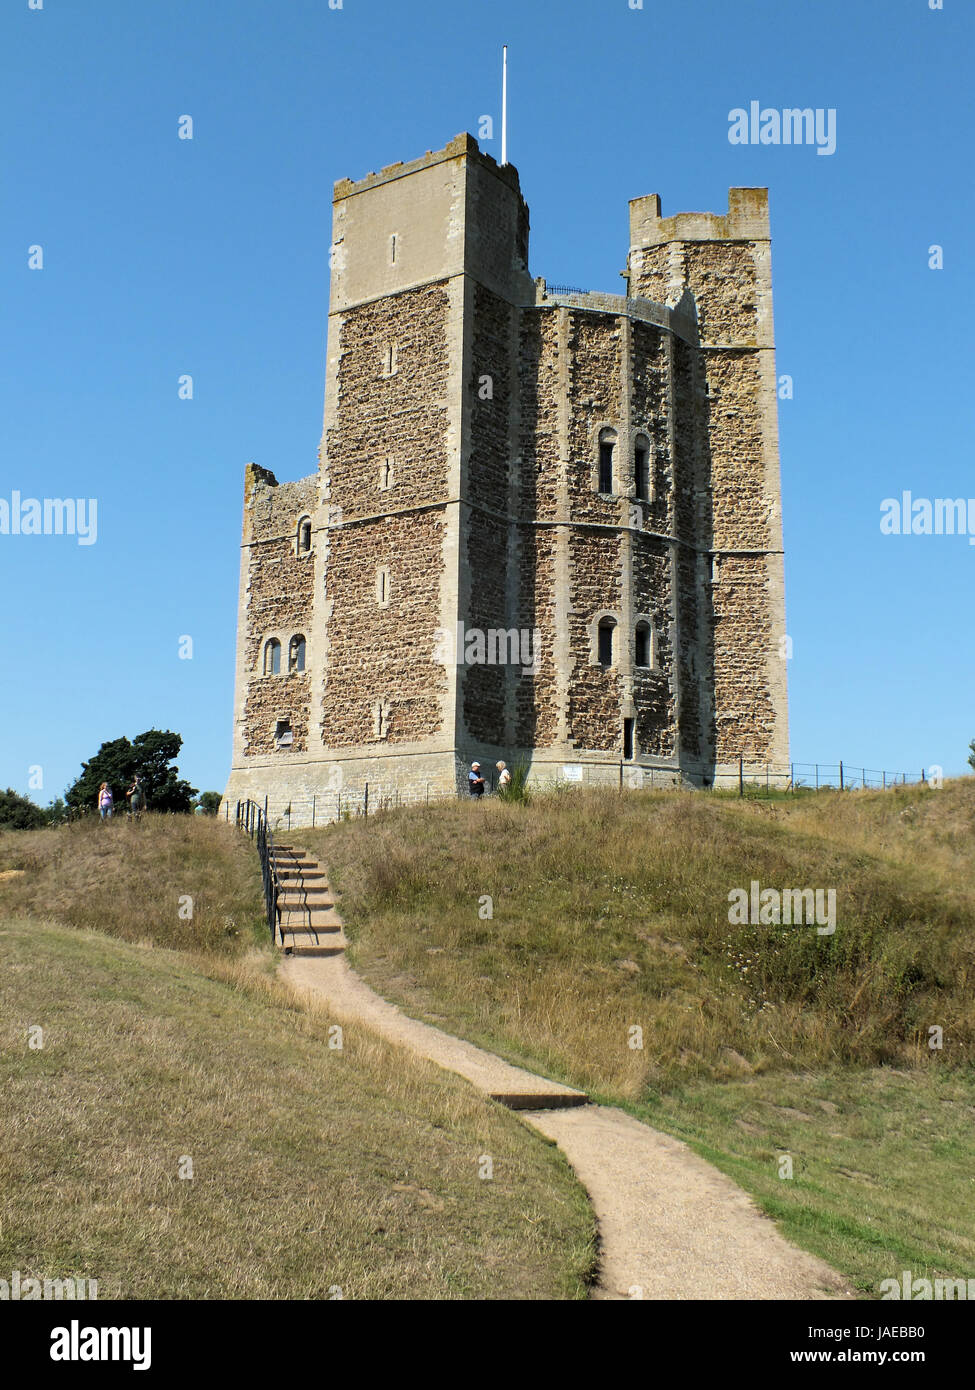 Orford Castle was built between 1165 and 1173 by Henry II of England to consolidate royal power in the region. The - Stock Image